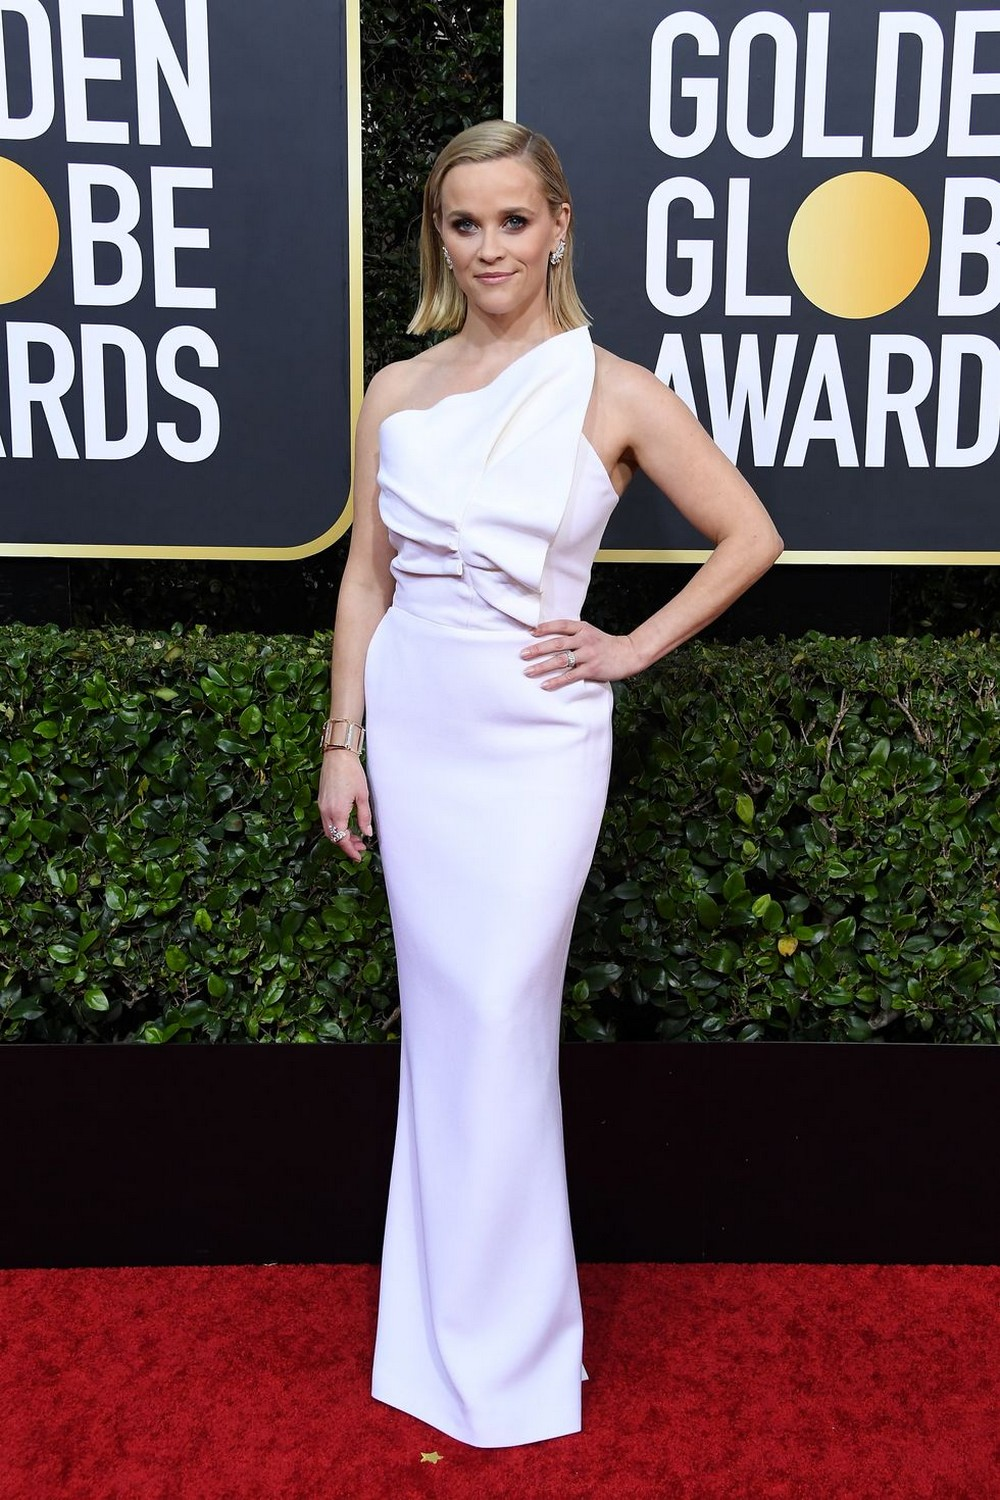 Golden Globes 2020 The Most Exciting Looks Seen on the Red Carpet 8 golden globes 2020 Golden Globes 2020: The Most Exciting Looks Seen on the Red Carpet Golden Globes 2020 The Most Exciting Looks Seen on the Red Carpet 8